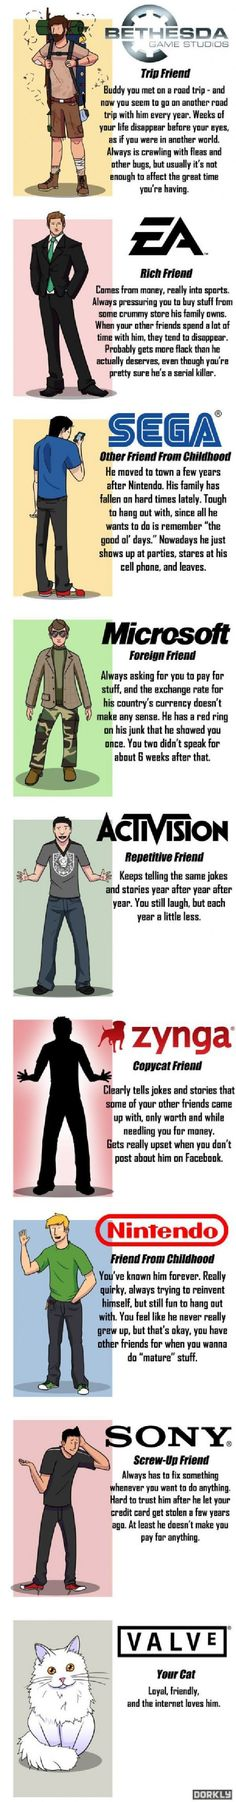 If Video Game Companies Were Your Friends!